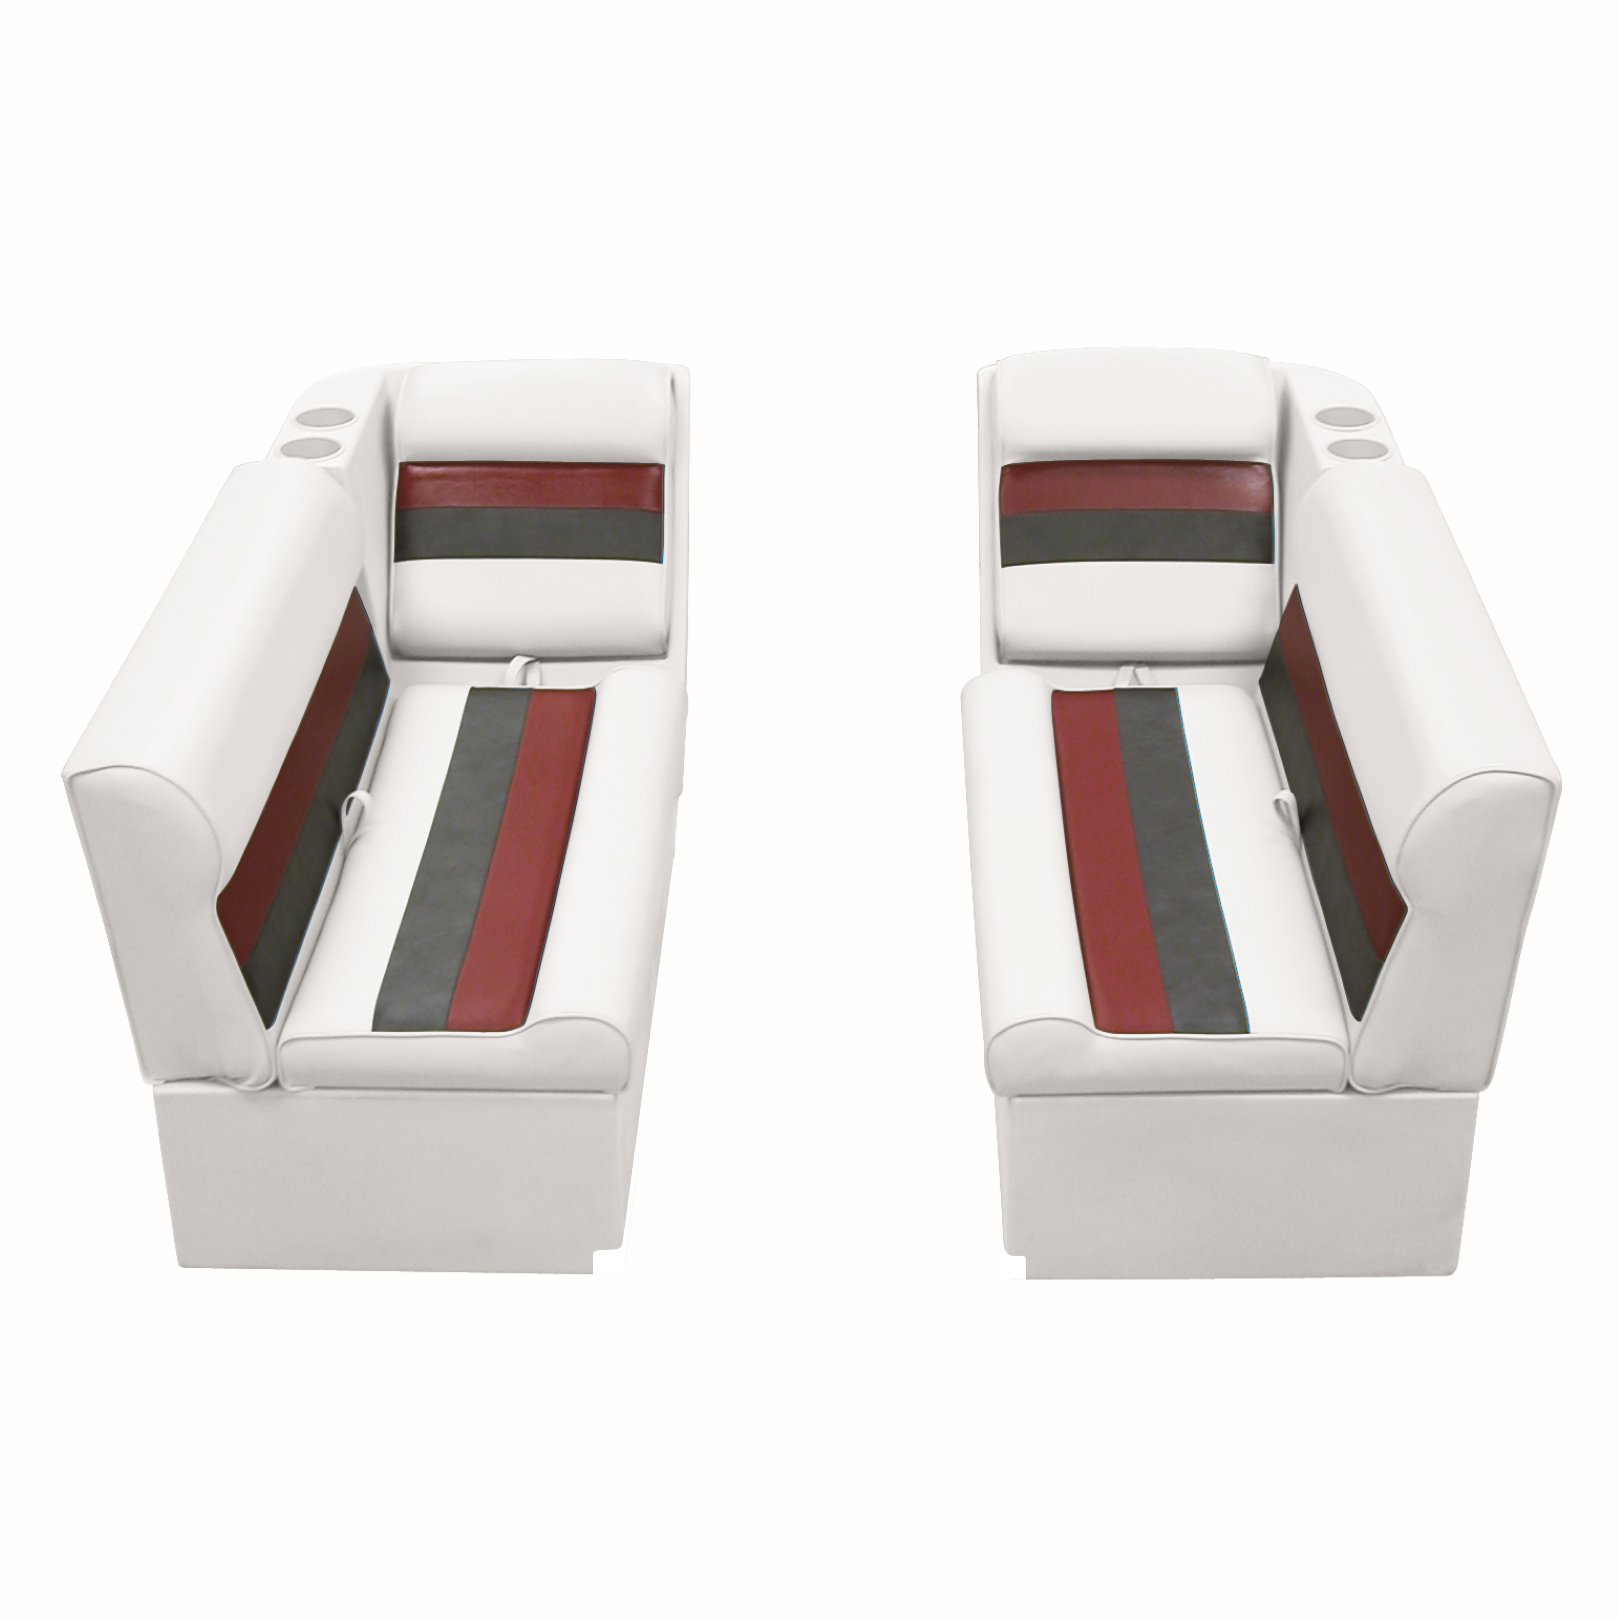 Toonmate Deluxe Pontoon Furniture with Toe Kick Base - Front Lounge Package